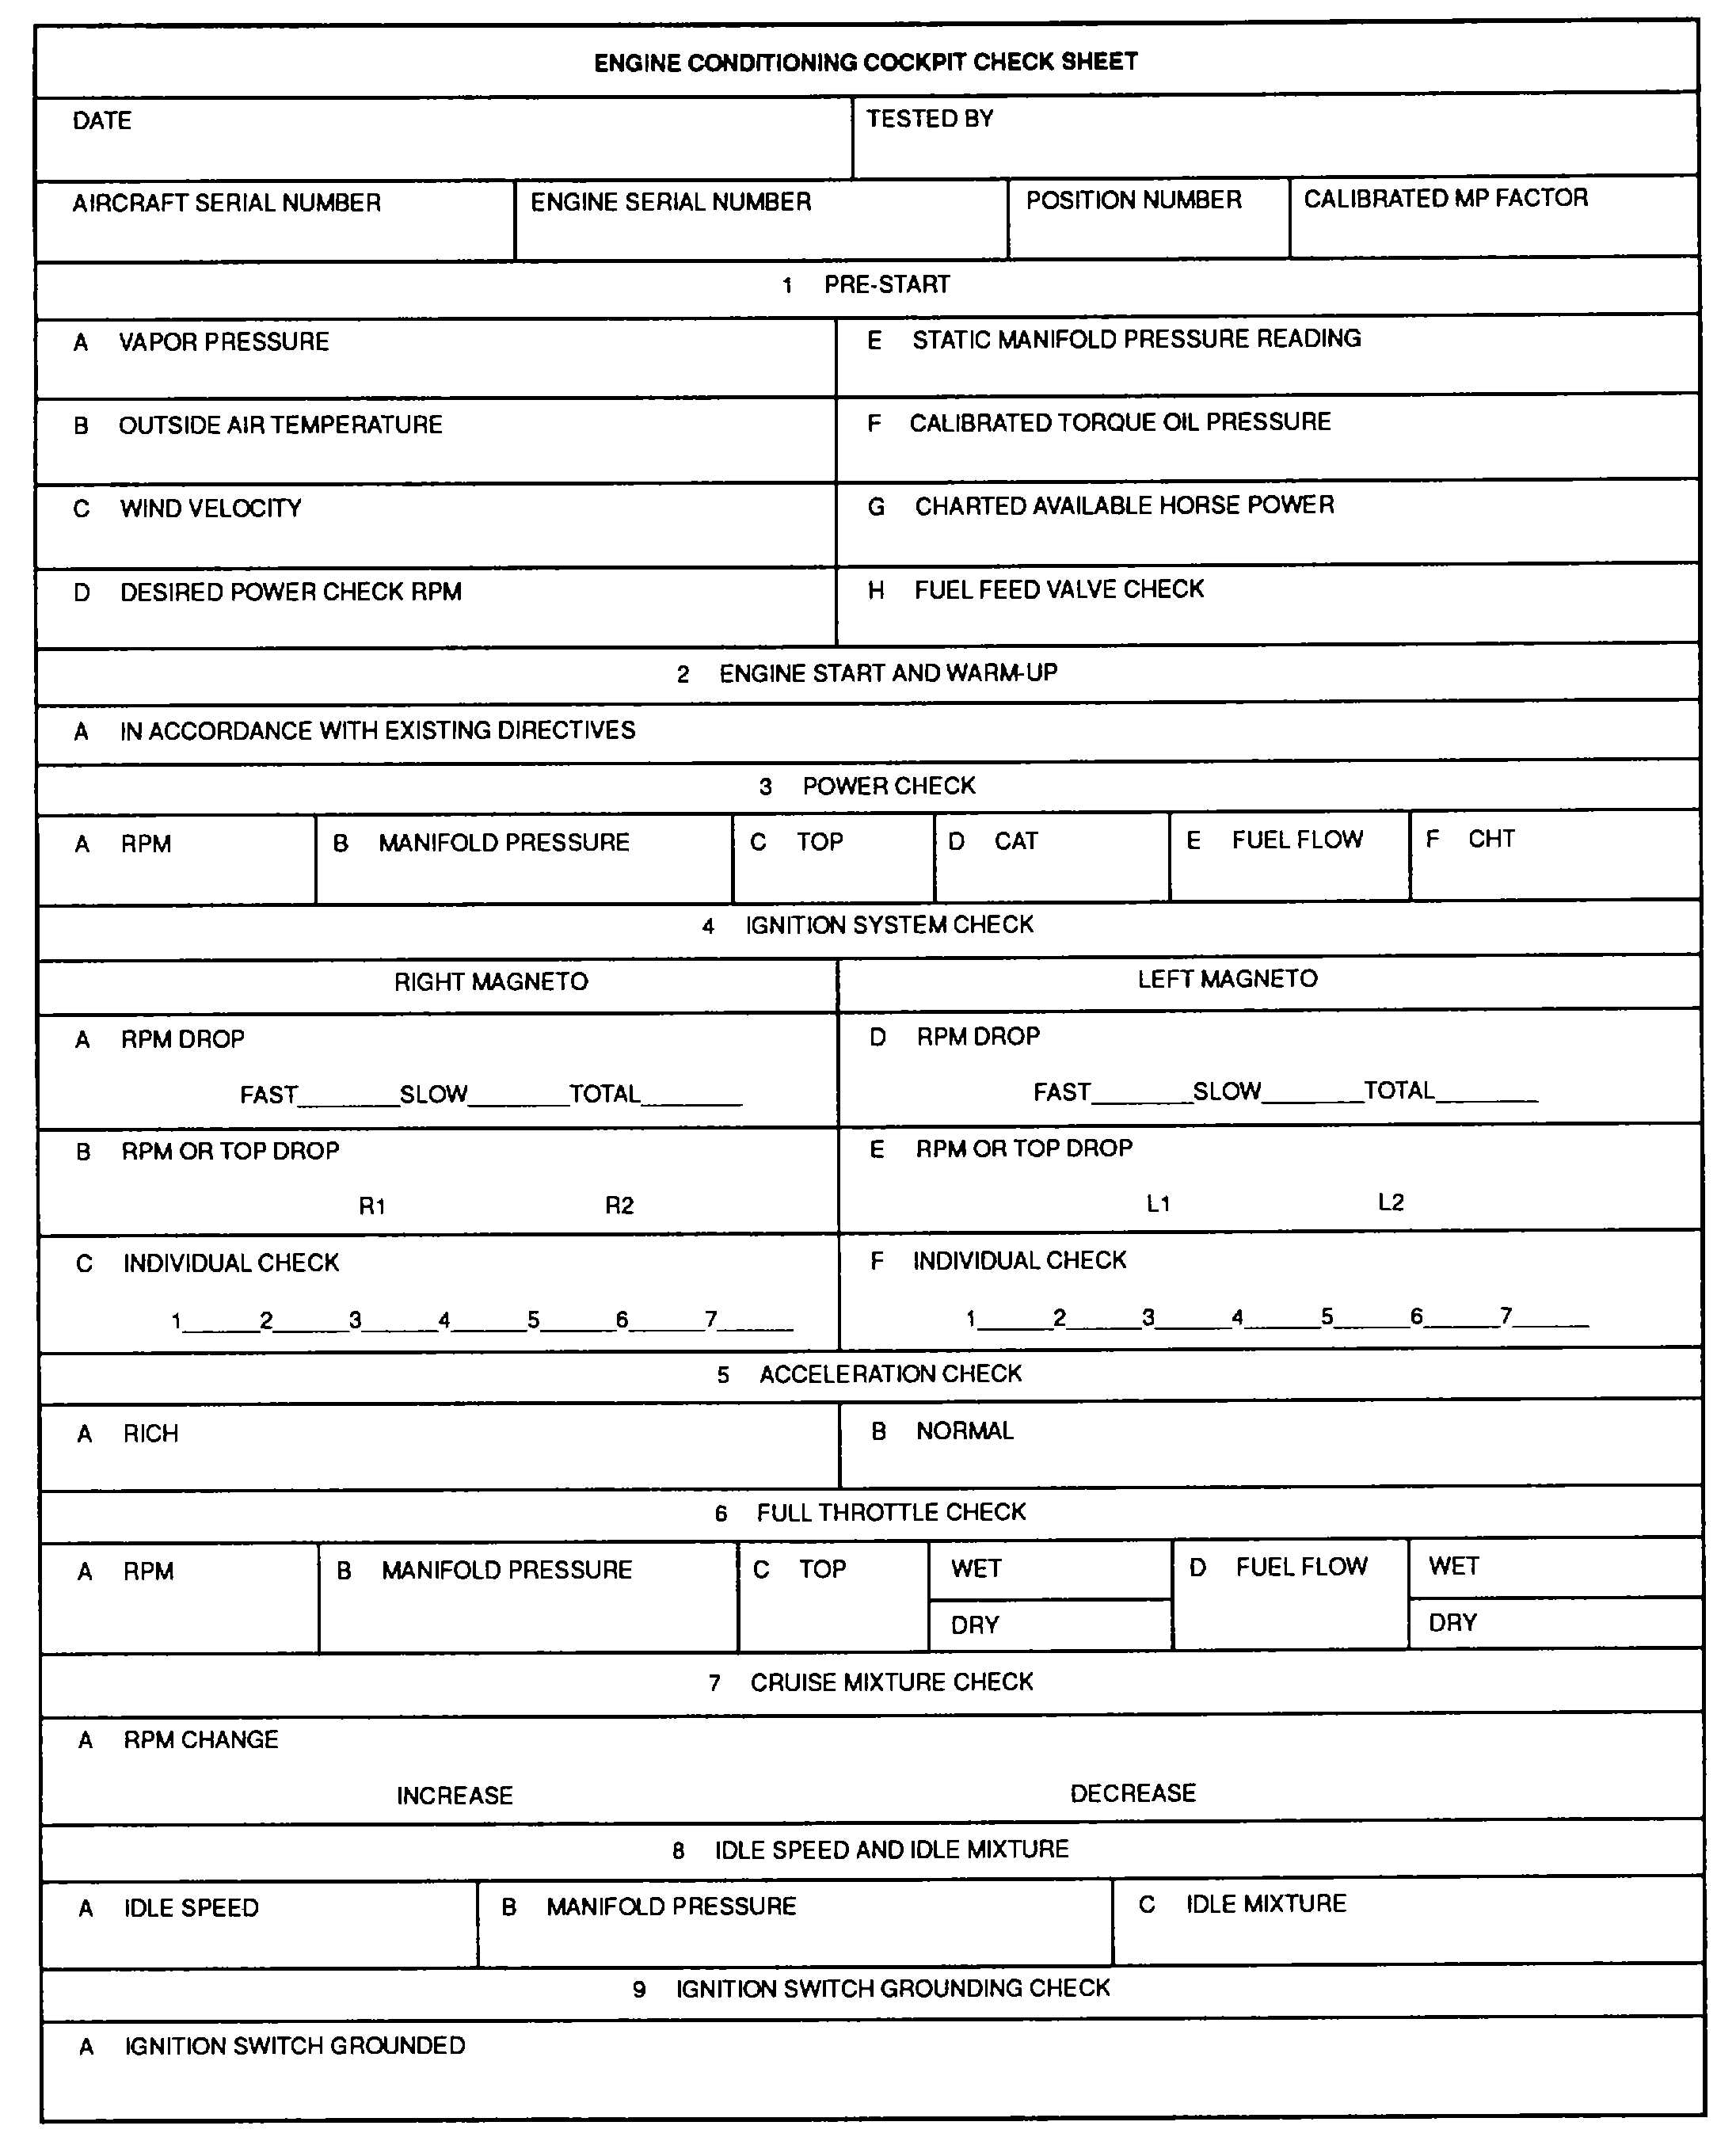 Figure 7 23 Engine Conditioning Cockpit Check Sheet